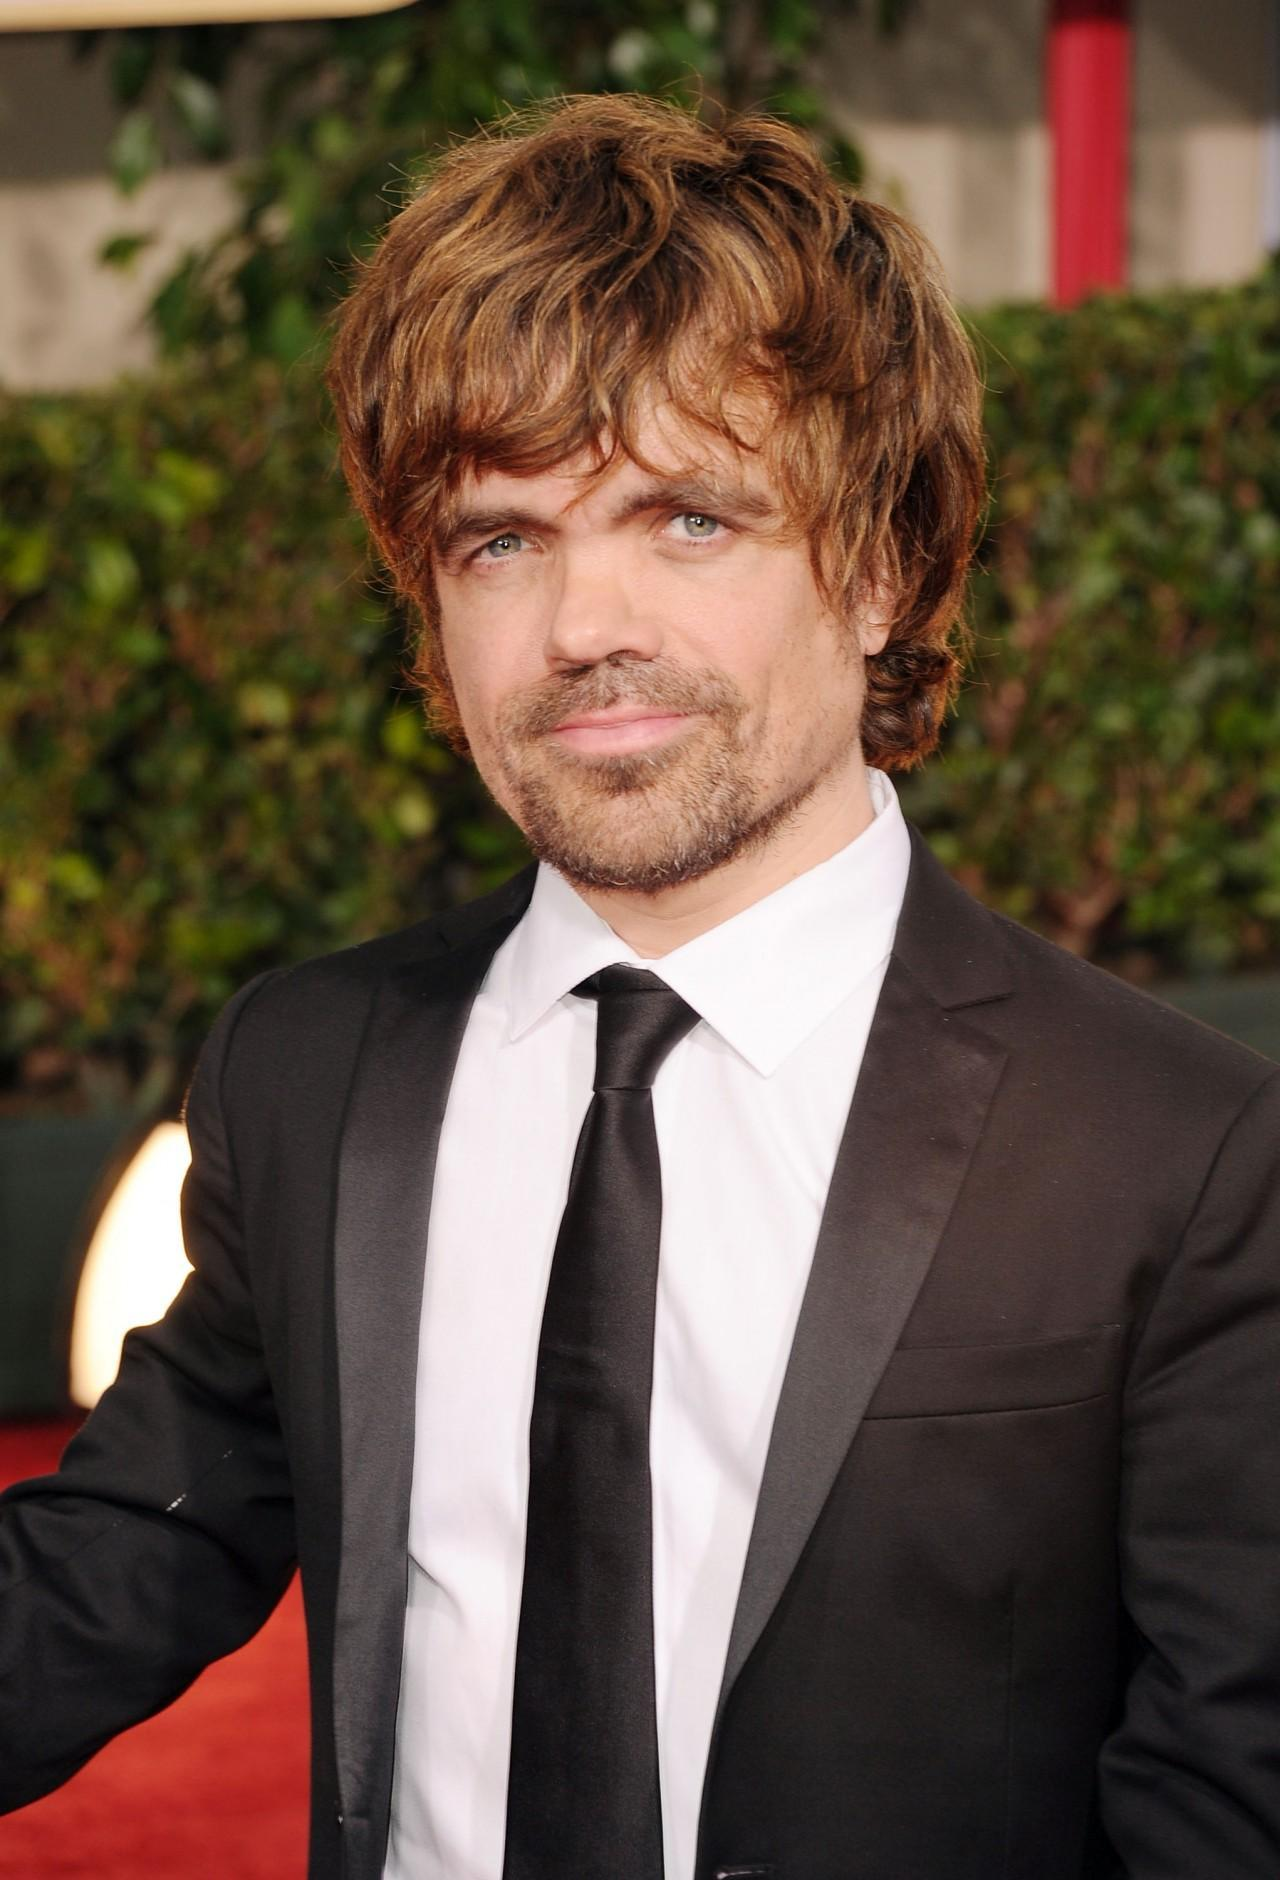 Peter Dinklage to Star in an R-Rated Leprechaun Comedy in the Vein of Bad Santa